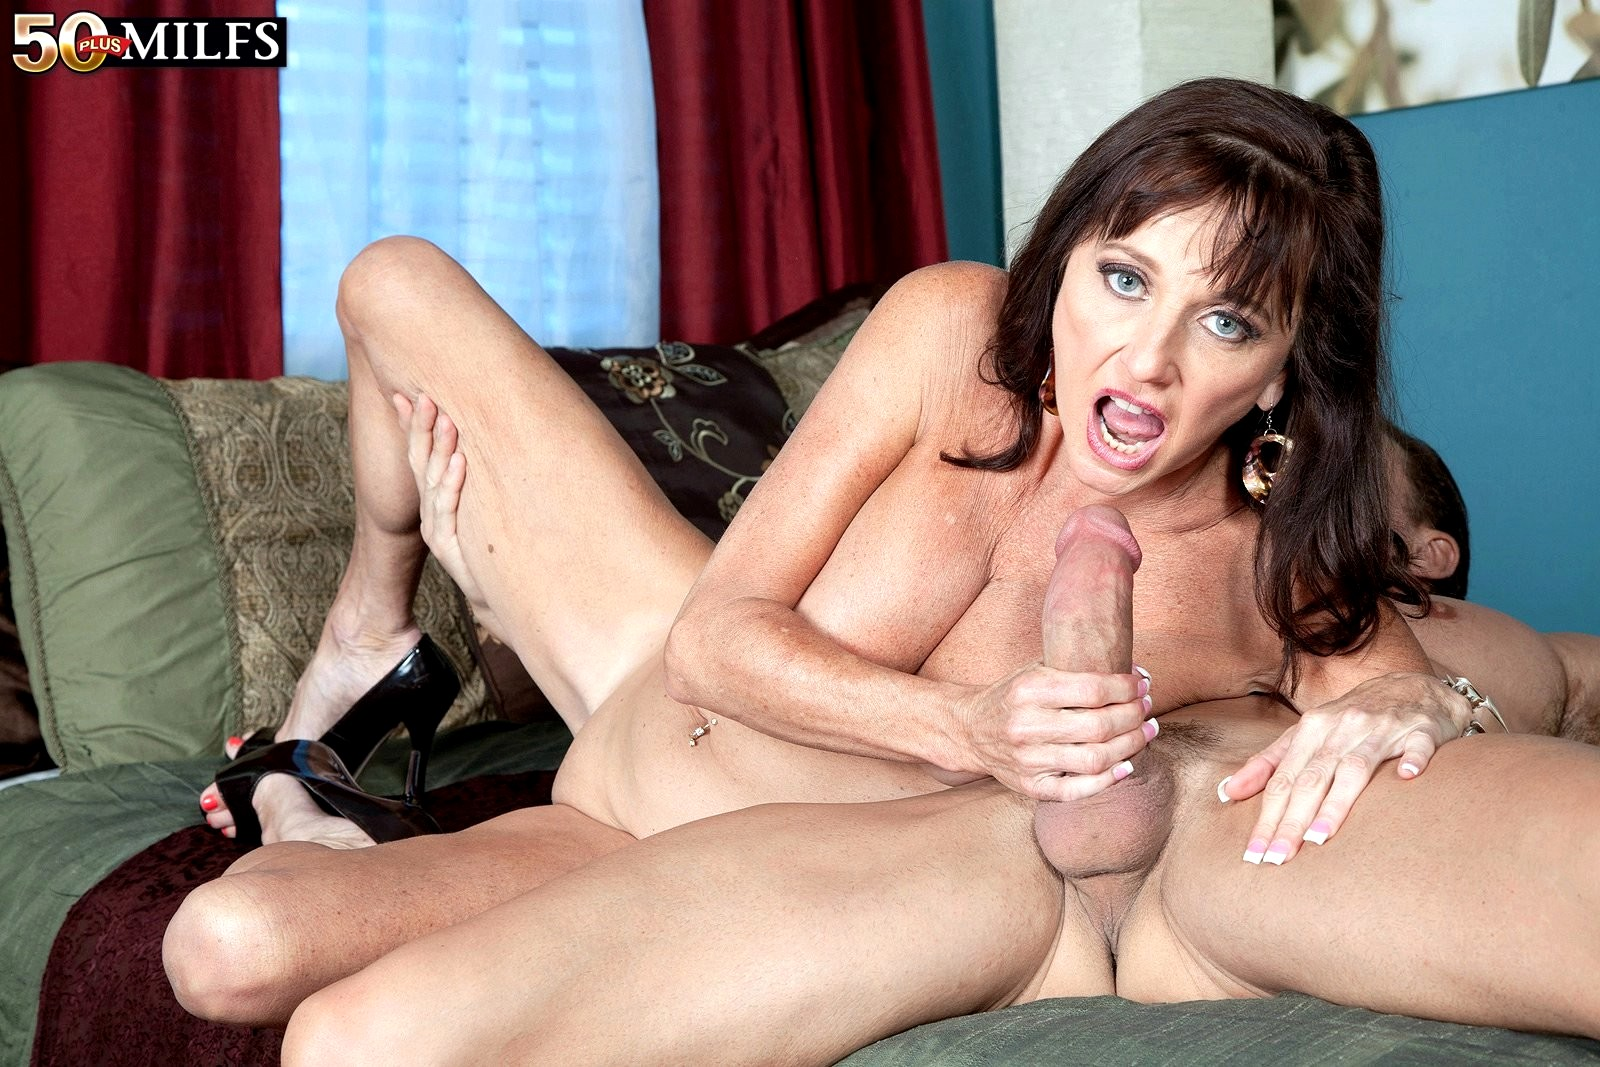 Milf Mother Picture Porn